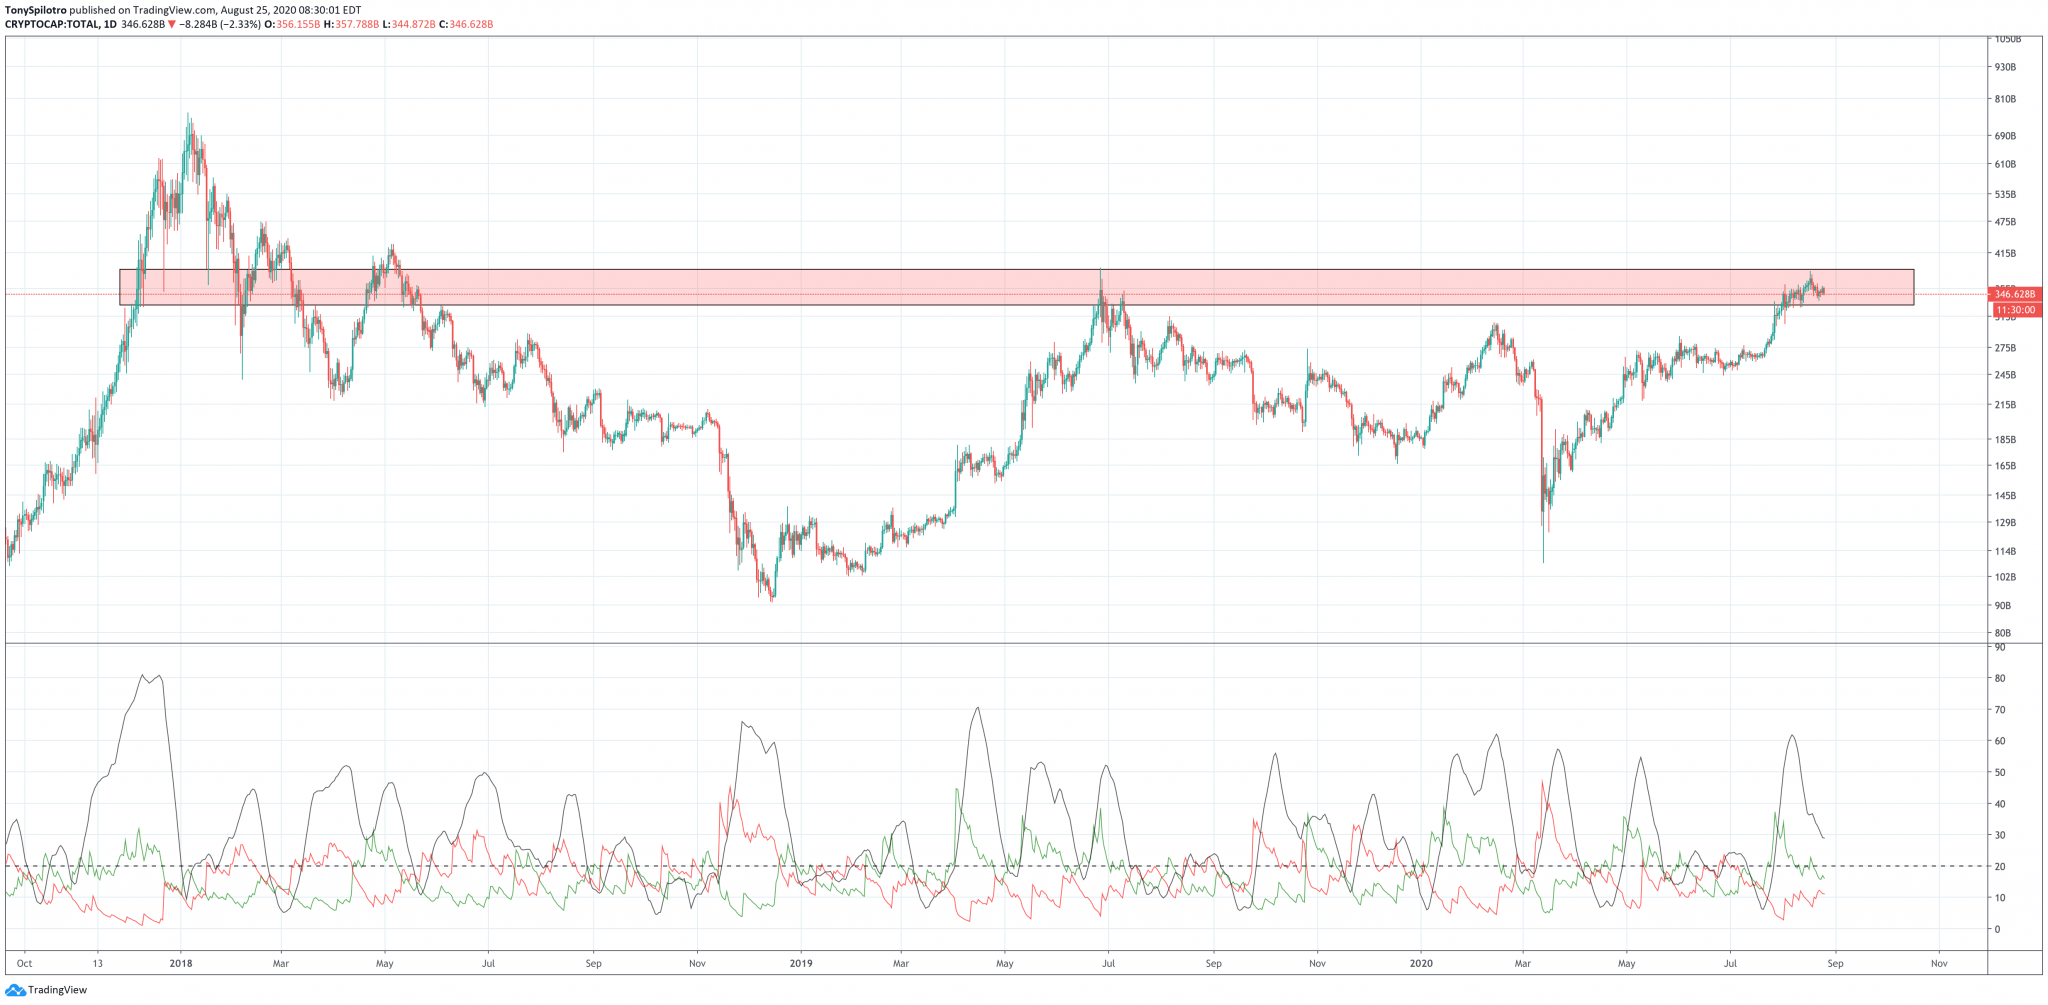 Bitcoin Drops Below $11,500: Is The Short-Term Crypto Market Uptrend Over?